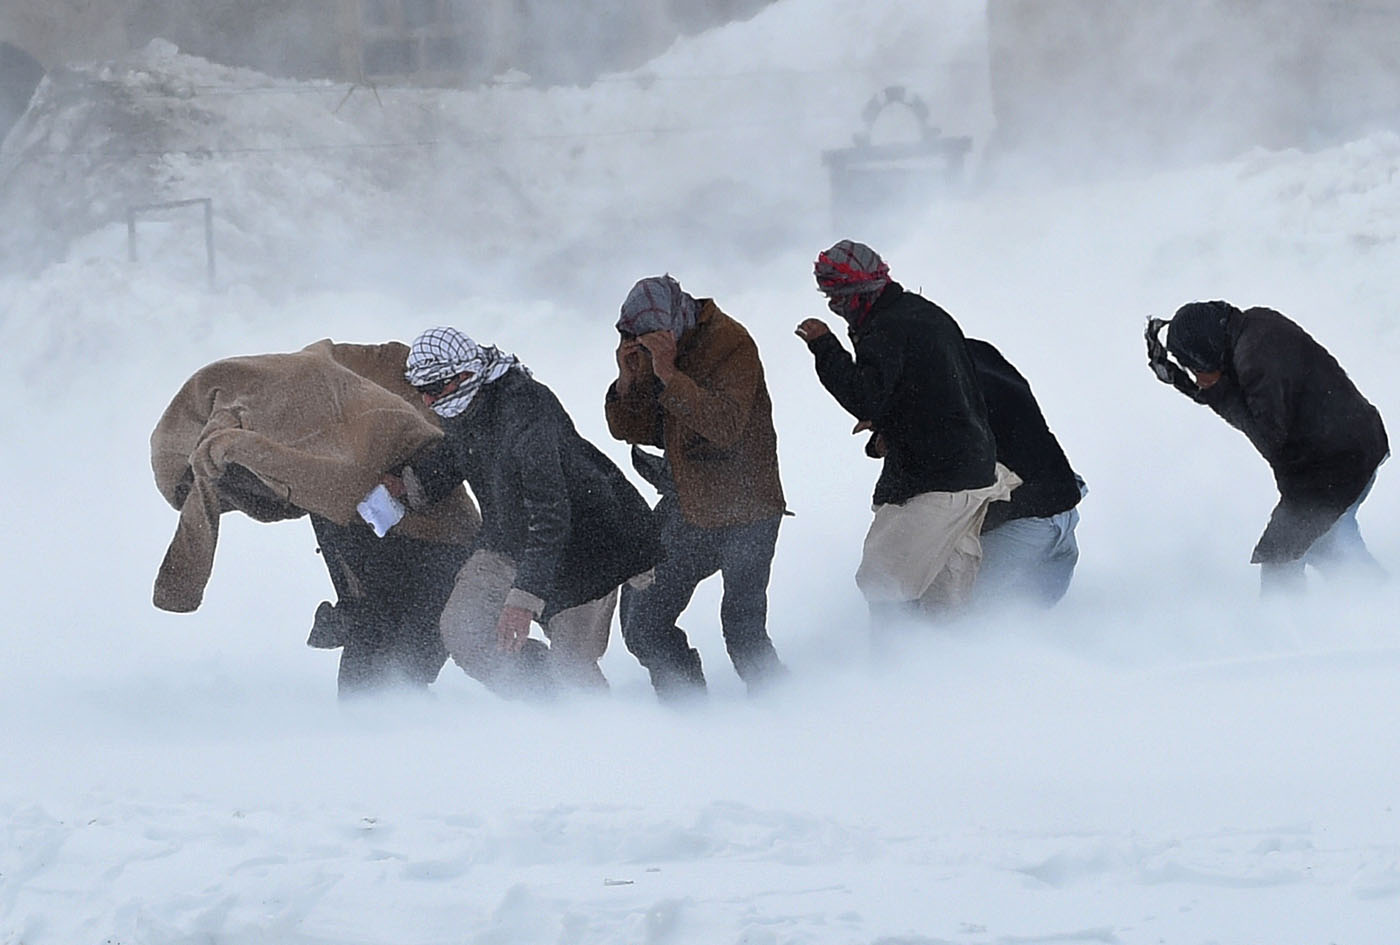 Afghan avalanche recovery